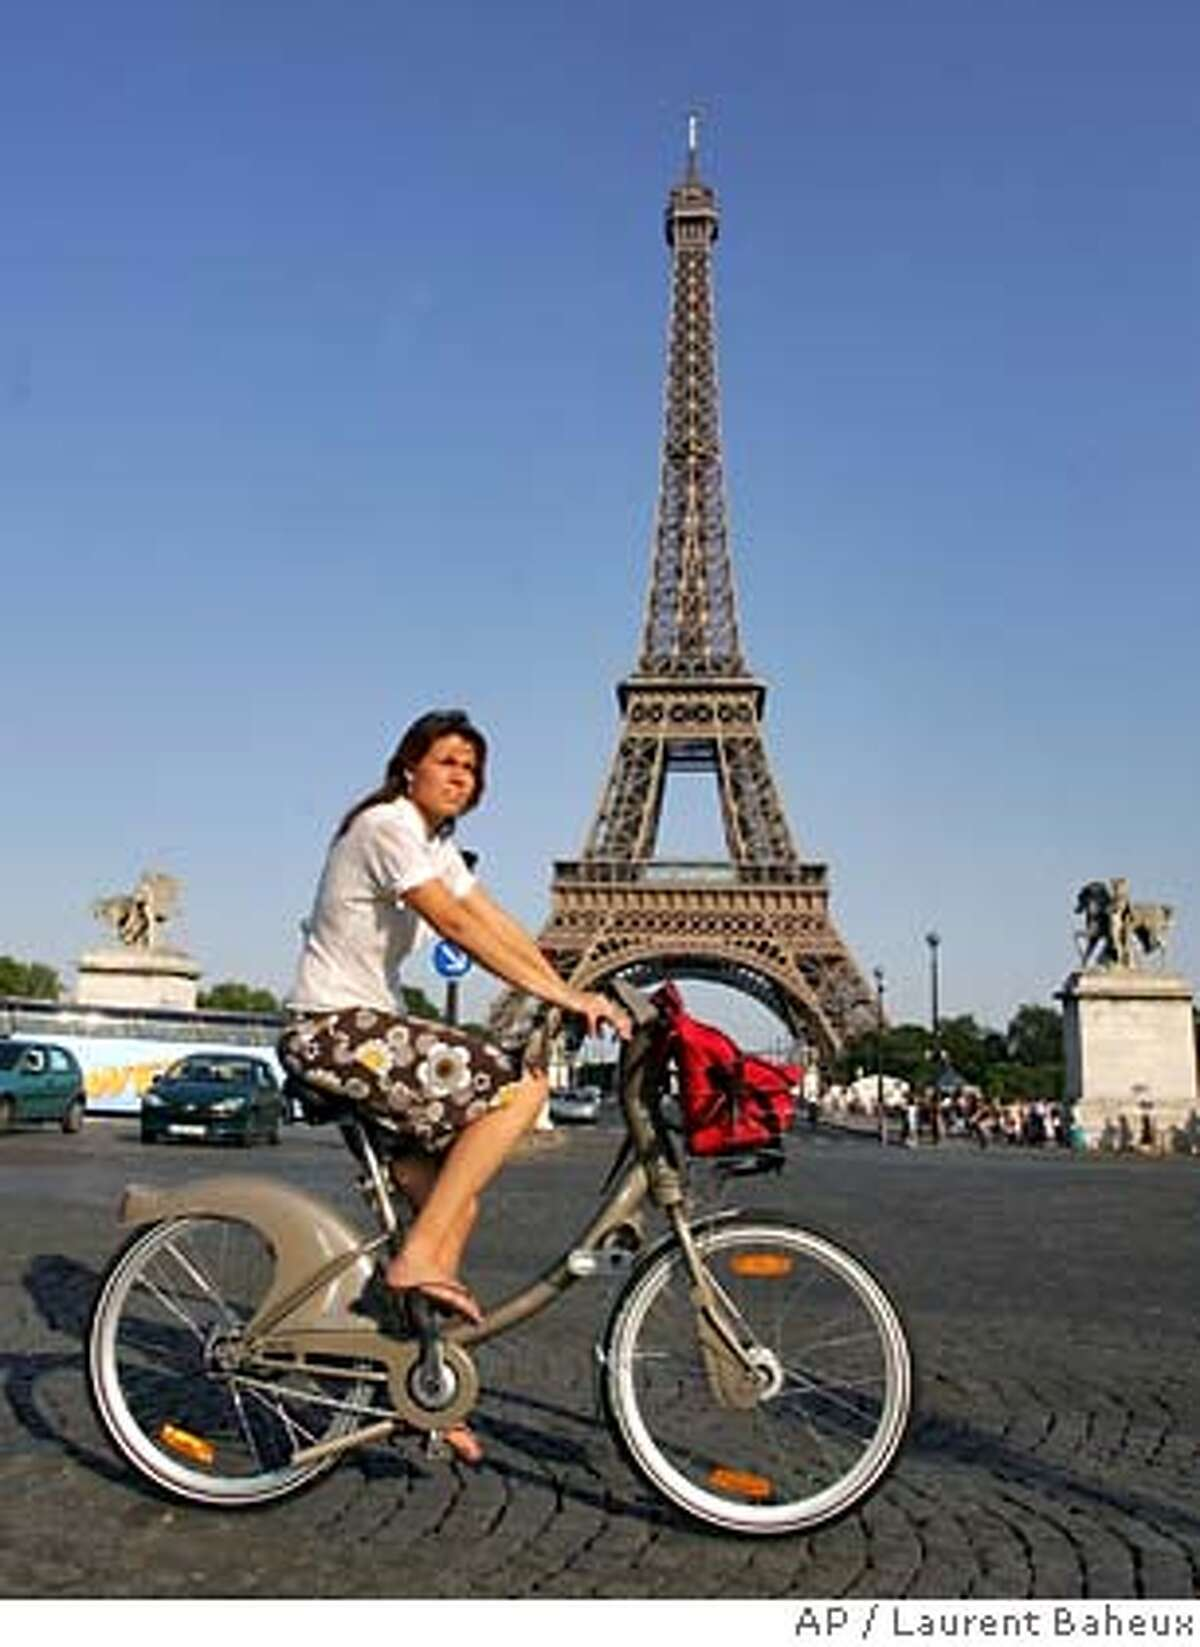 A rider uses a new bicycle provided by Paris City Hall, around the Eiffel Tower in Paris, Sunday, July 15, 2007. Paris City Hall launched a new bicycle service Sunday, with more than 10,600 posted at 750 stations all over the city and prices starting at a euro (US$1.36) for a one-day pass. Users can take a bike and put it back at any station around town. (AP Photo/Laurent Baheux)